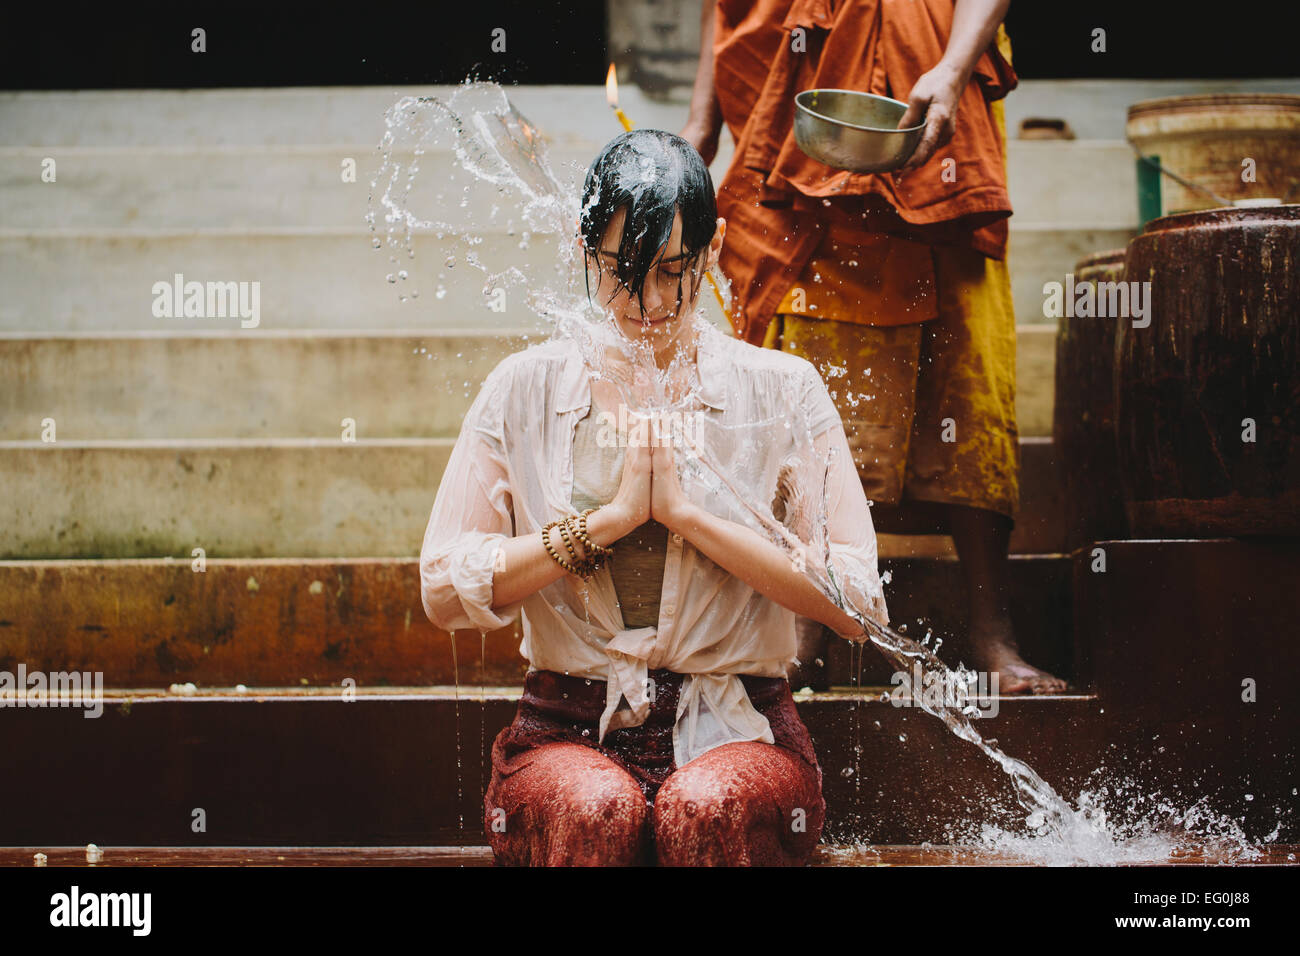 Cambodia, Buddhist monk water blessing young woman - Stock Image